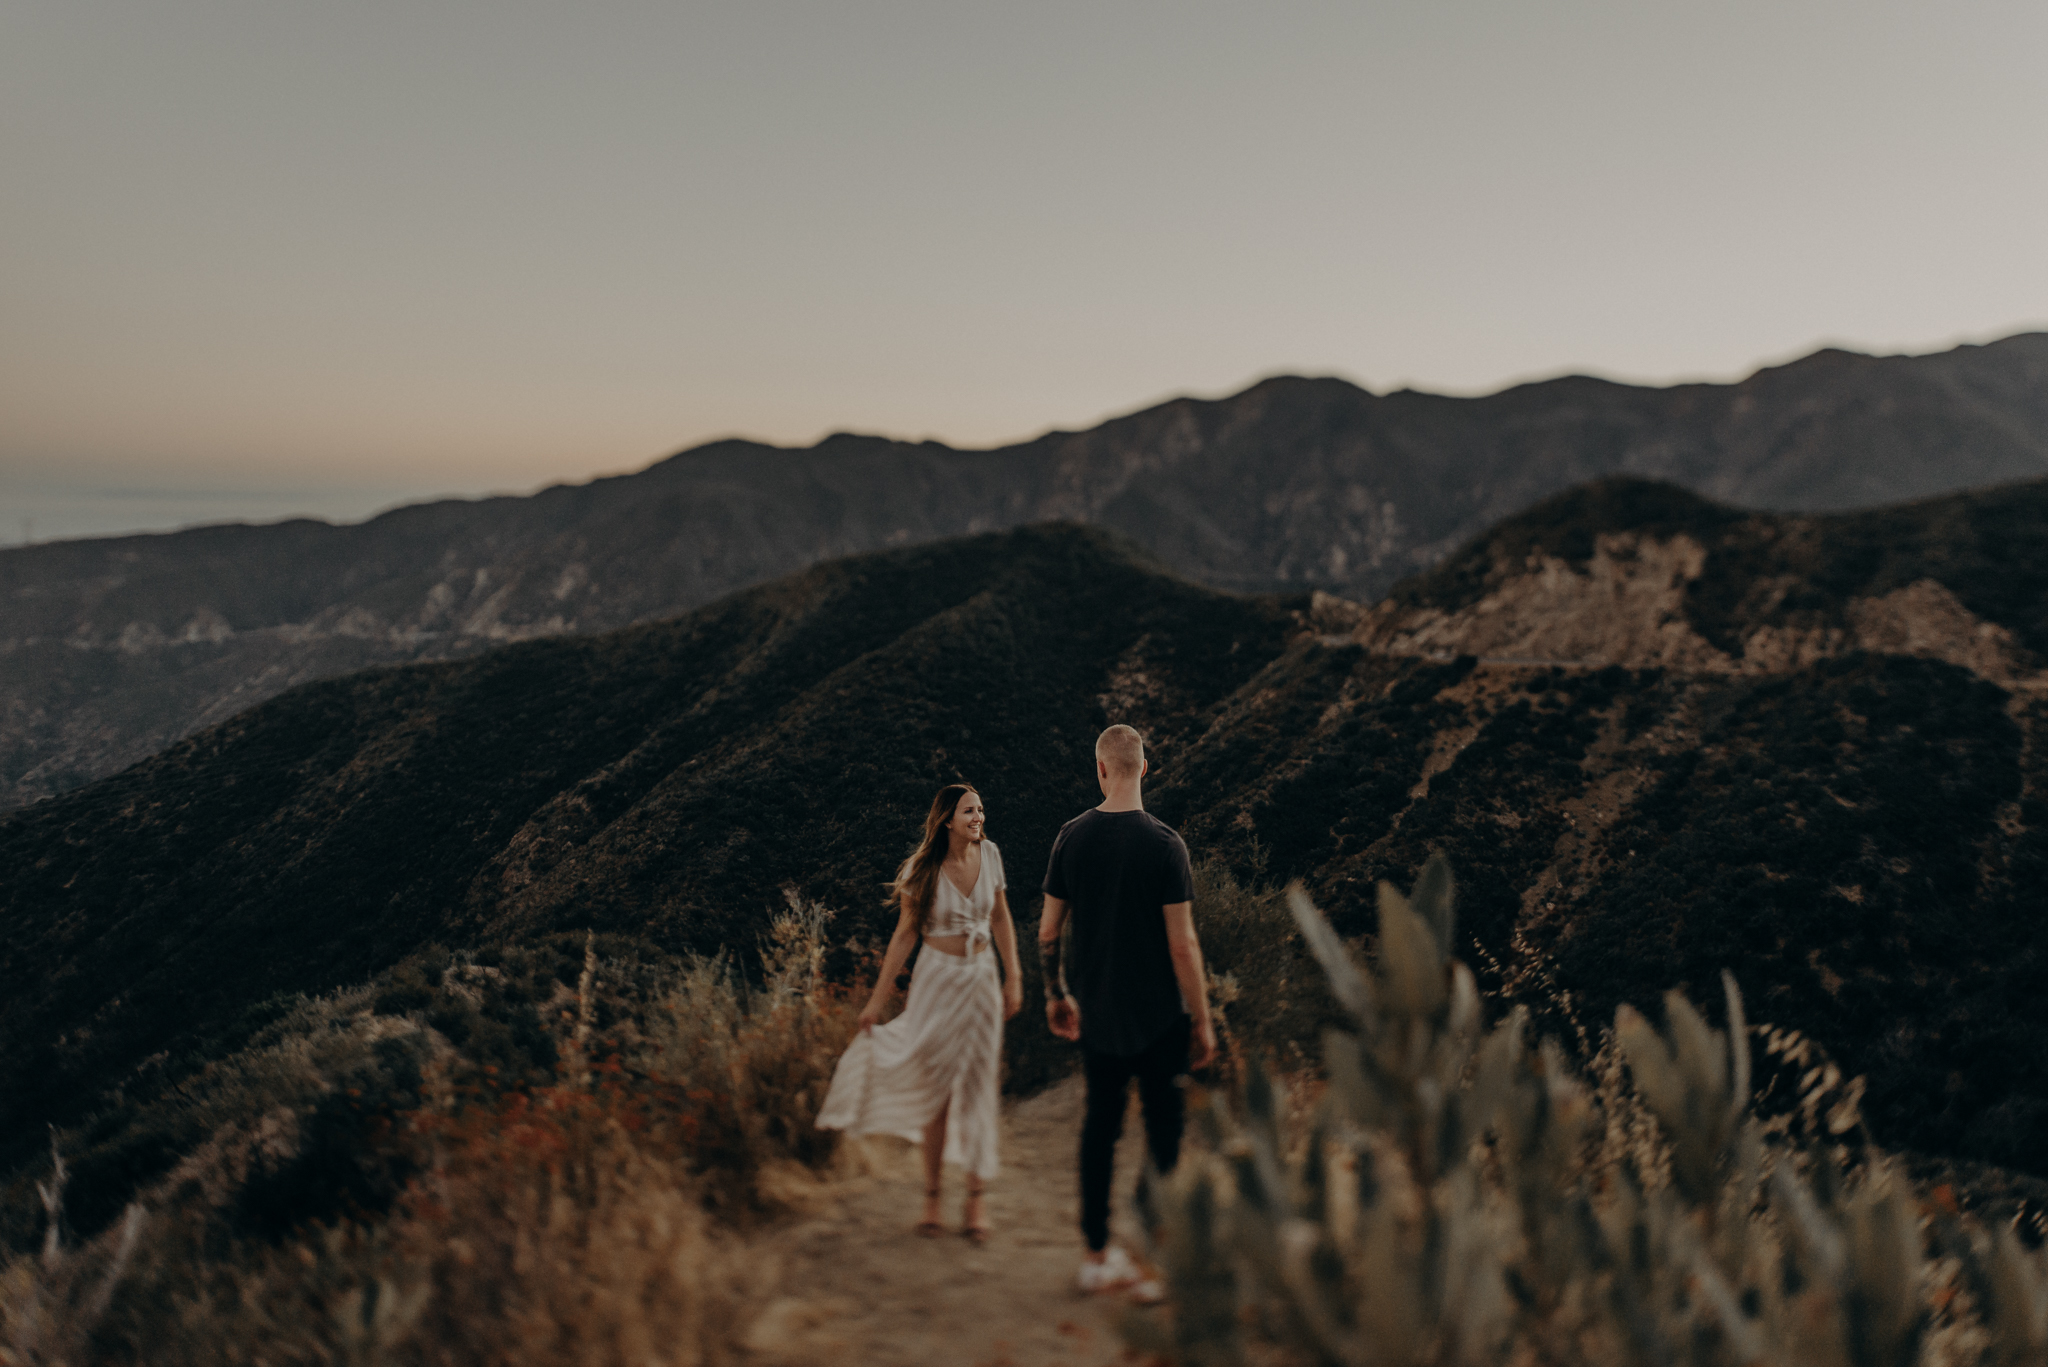 Isaiah + Taylor Photography - Los Angeles Forest Engagement Session - Laid back wedding photographer-037.jpg